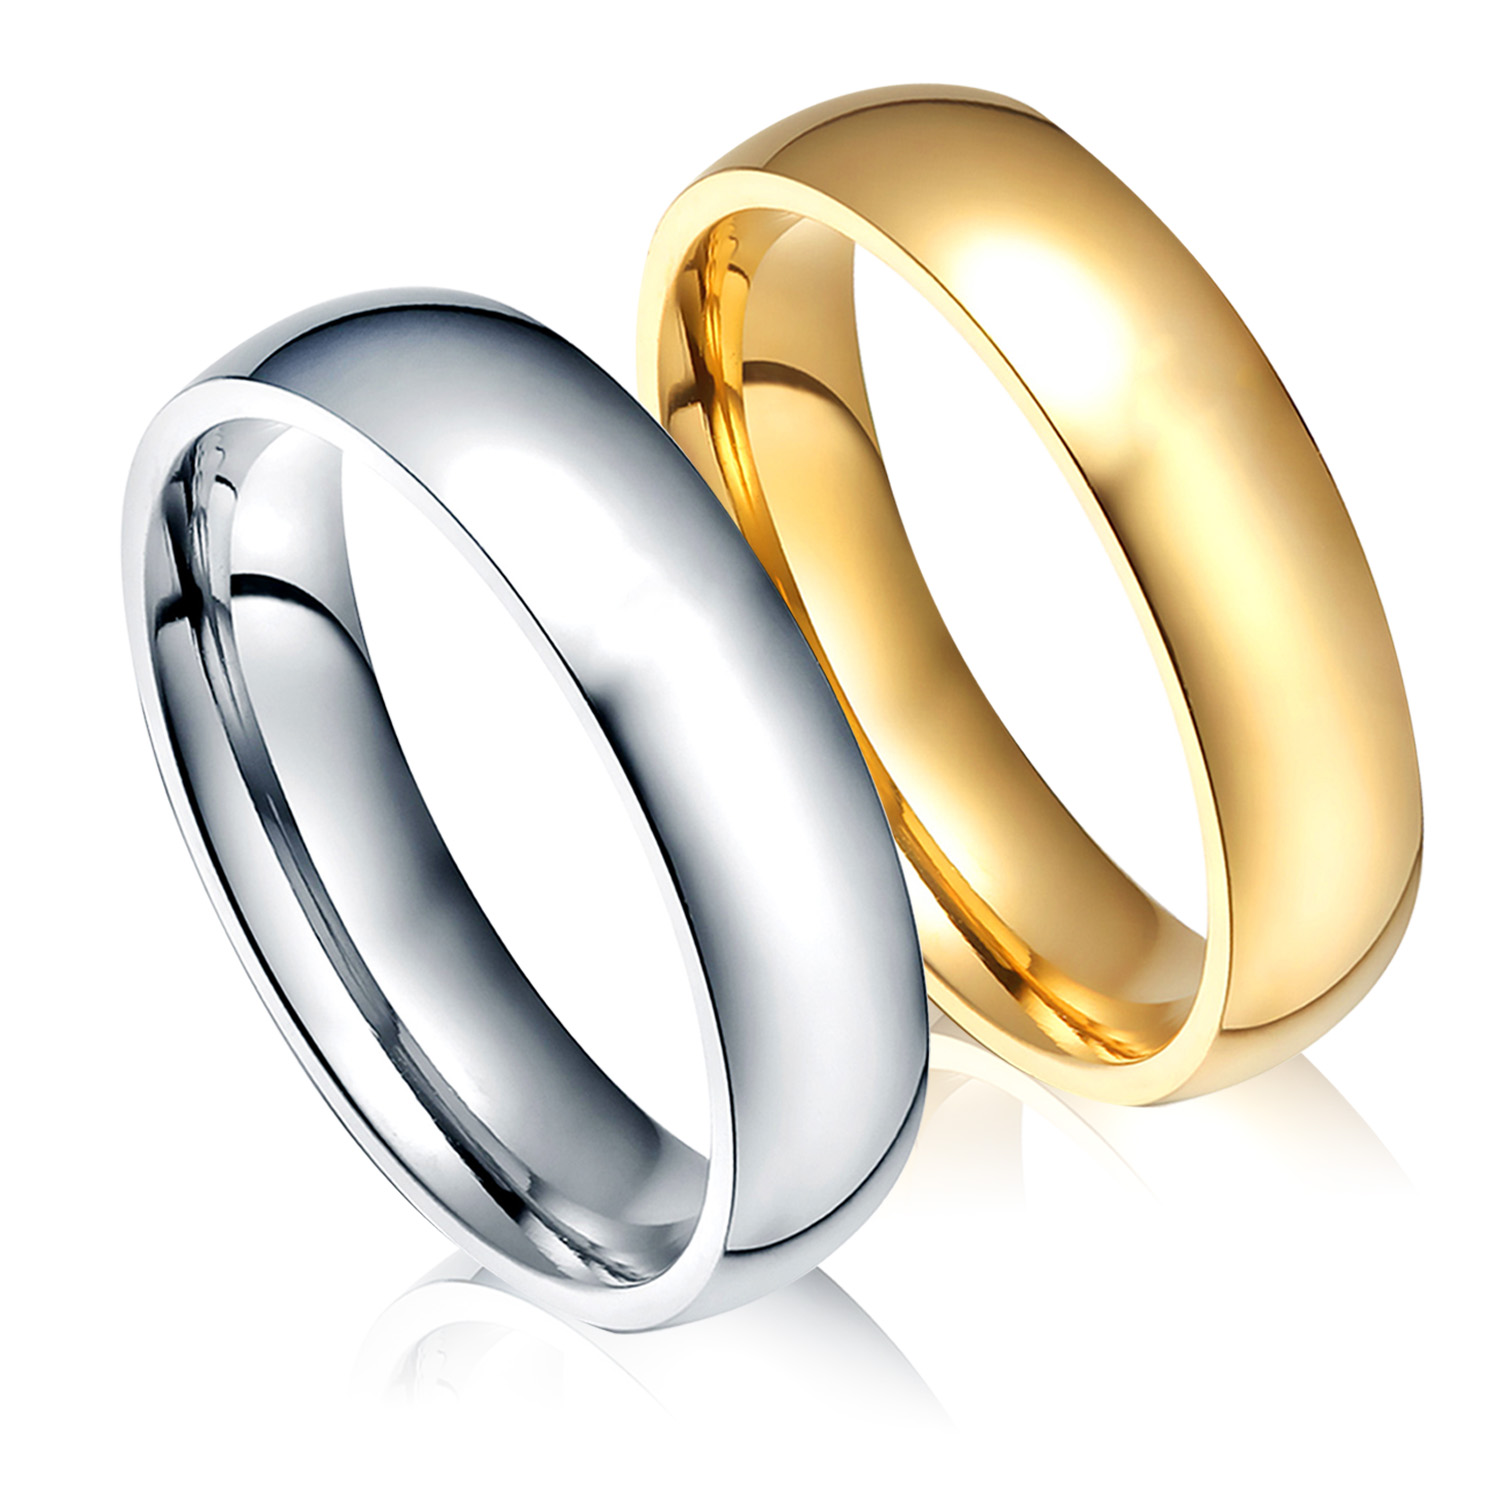 Woman 2013 Bands: Gold Color Wedding Bands Ring For Women Men Jewelry 6mm